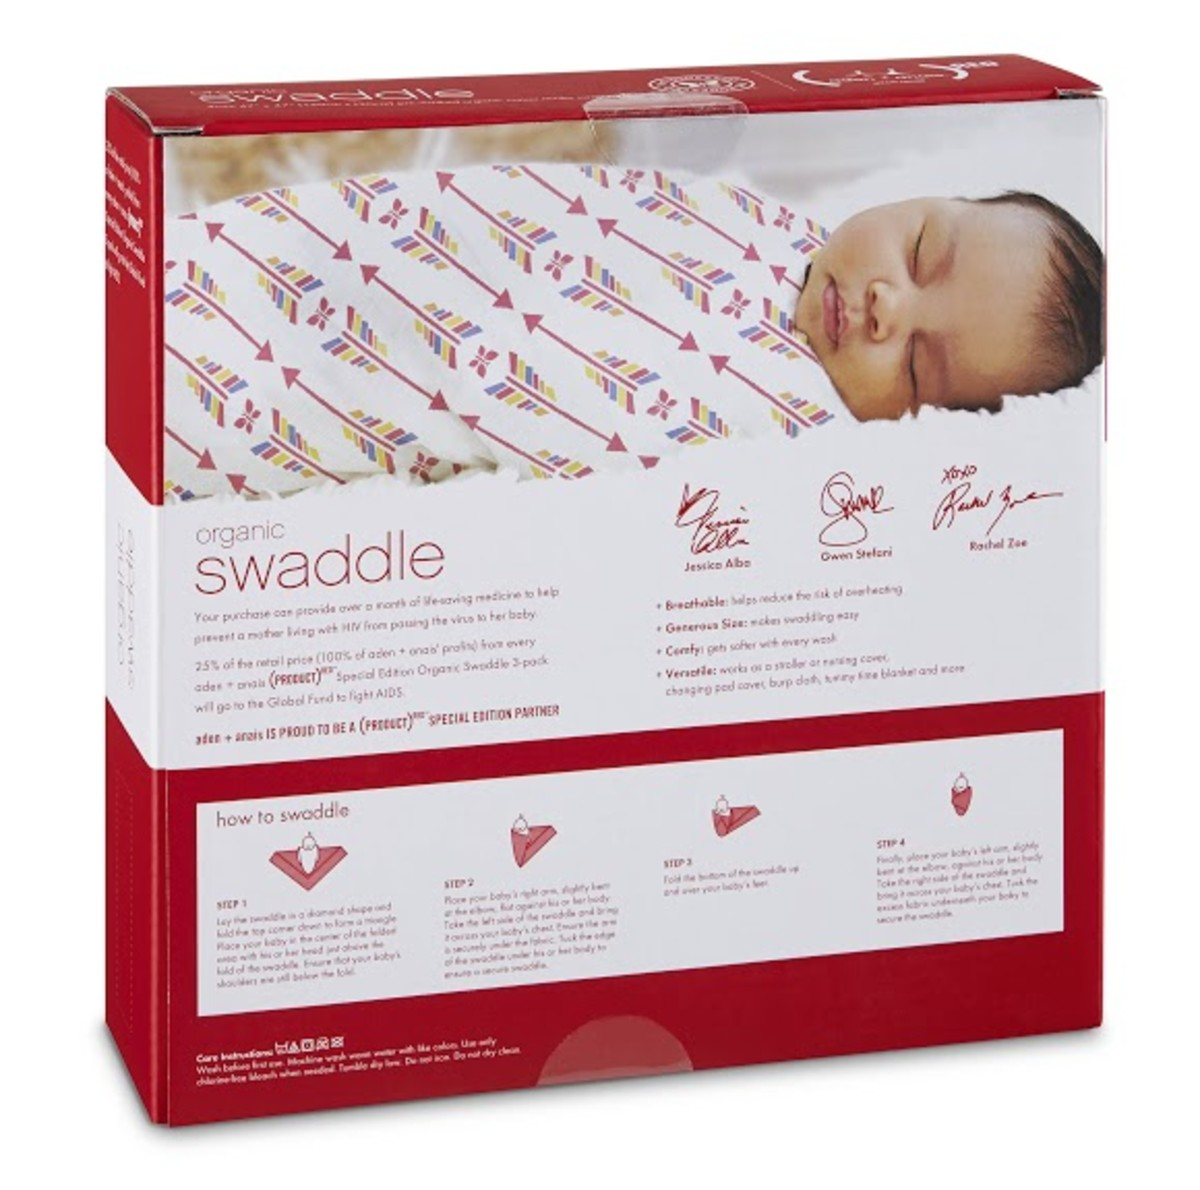 5969_2-organic-swaddle-3-pack-red-celebrity-back